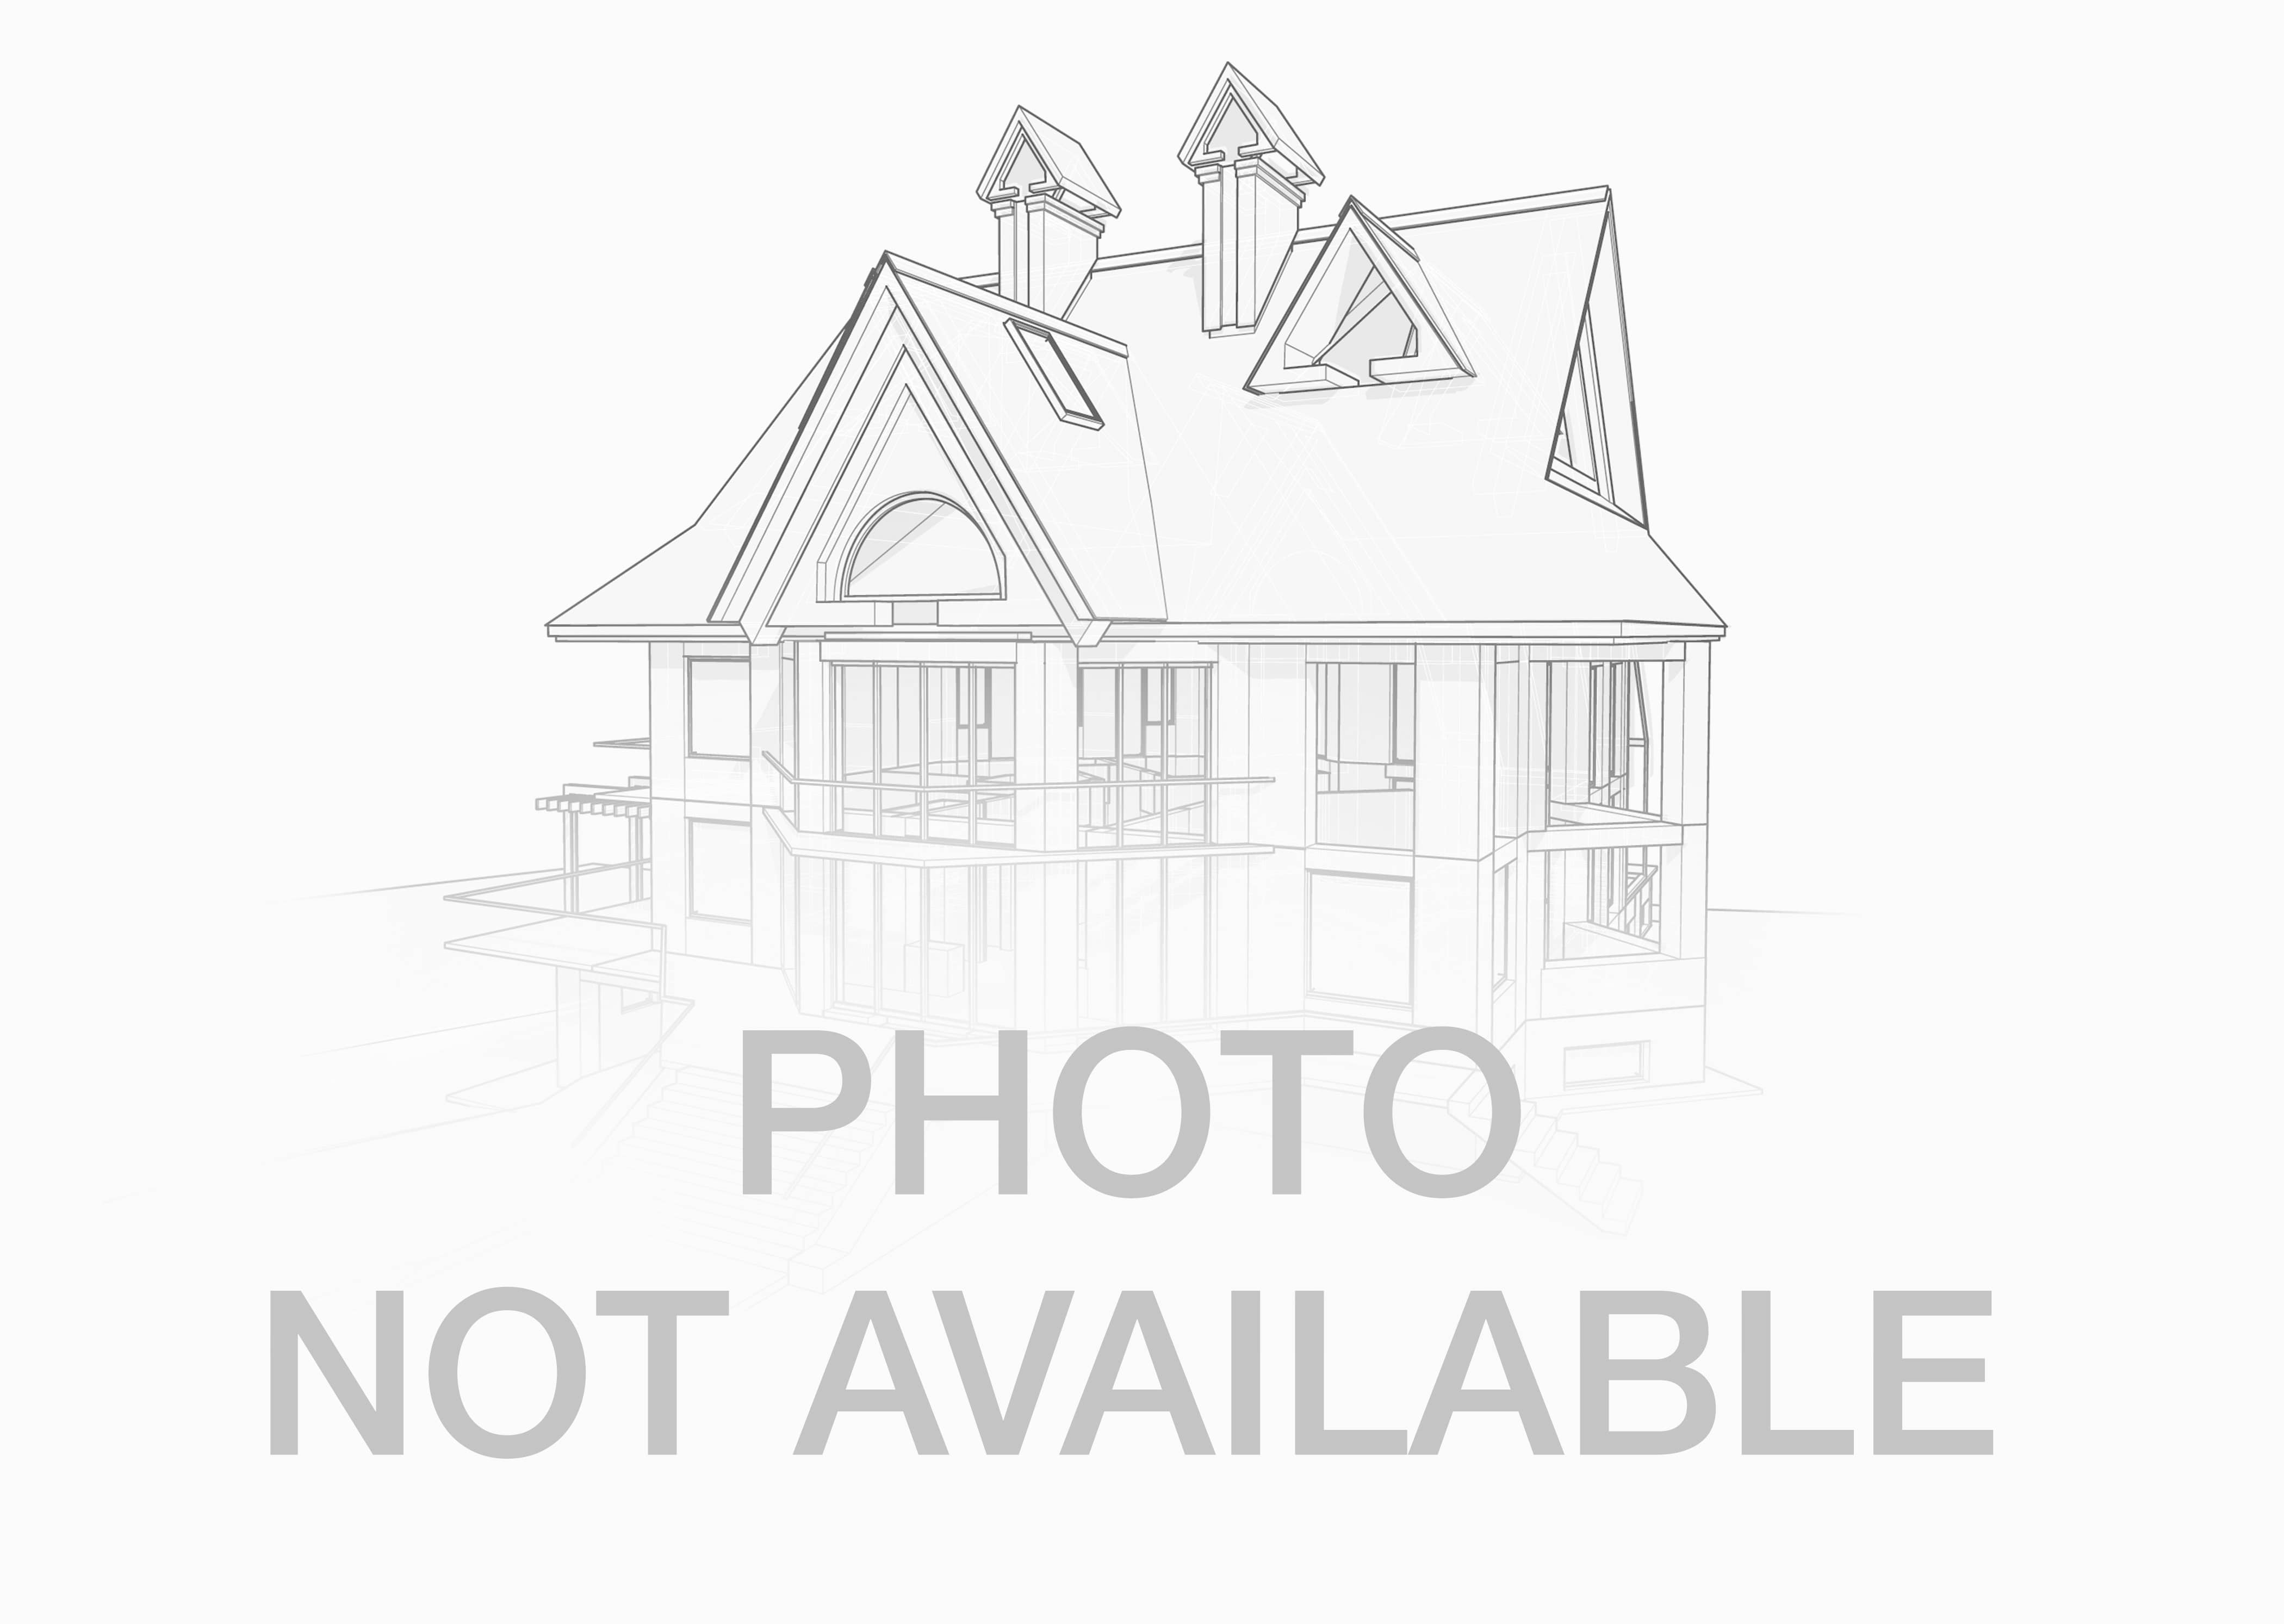 Primary Property Photo For 8820 Hardesty Dr